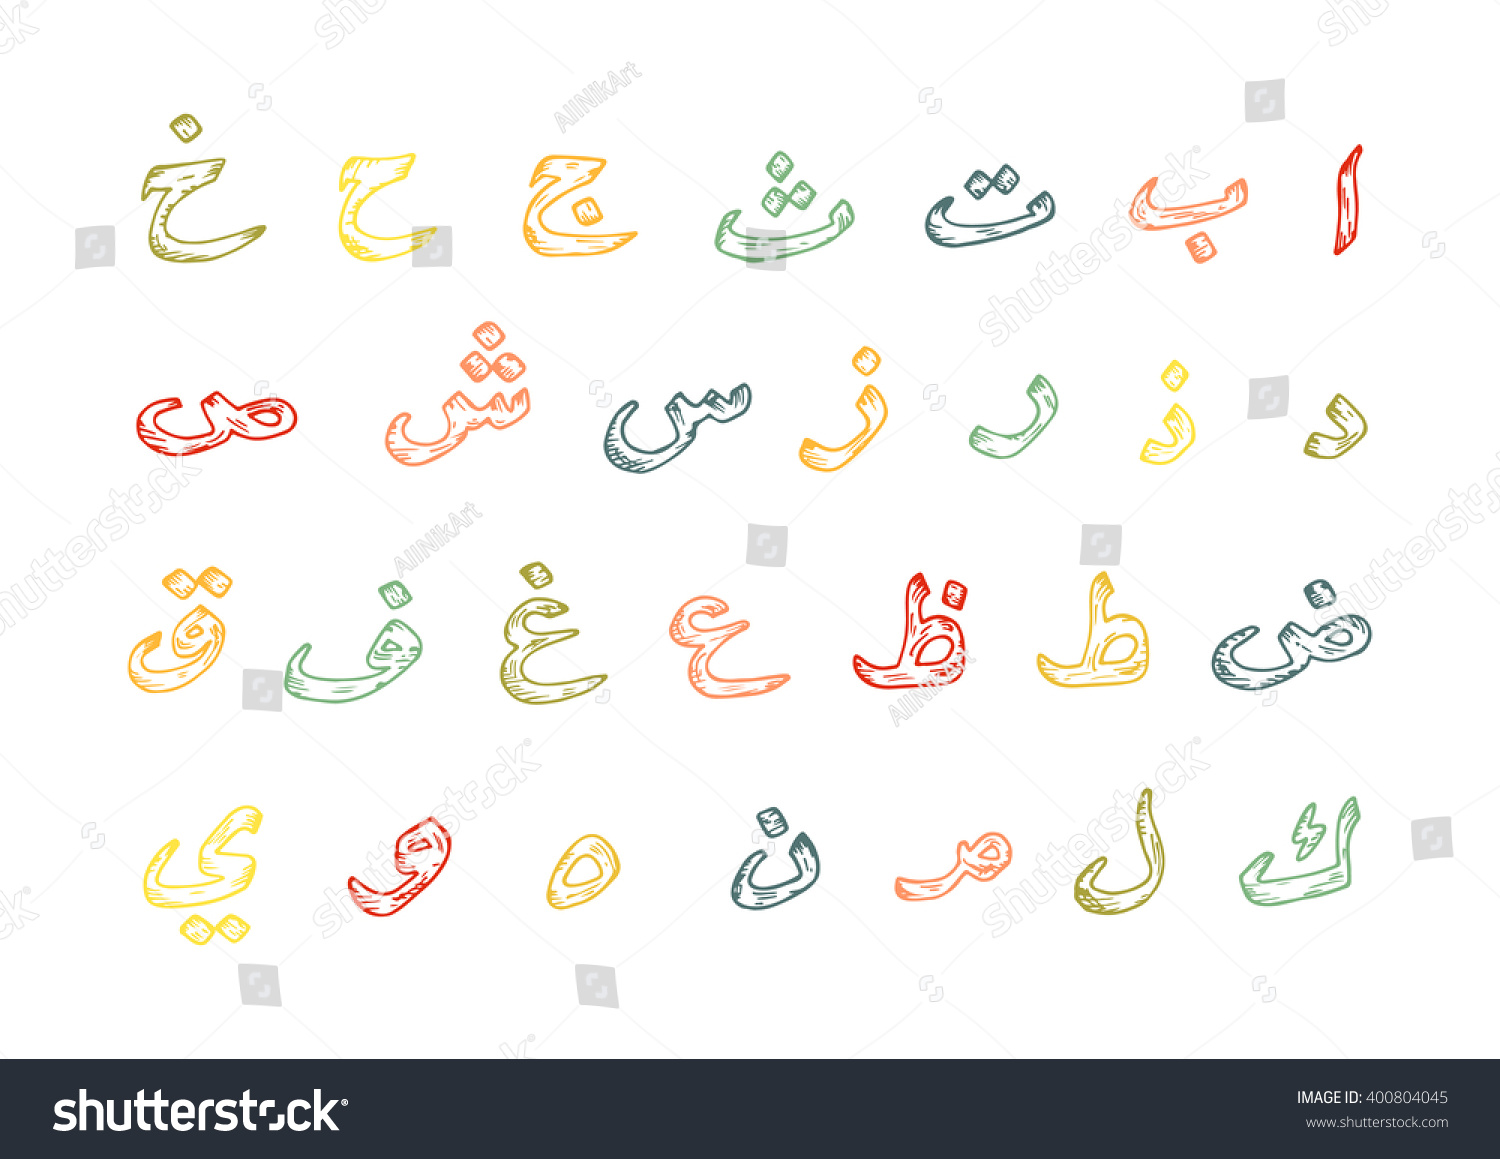 Arabic alphabet for kids with cute animals and fruit for each letter - Colorful Arabic Alphabet Arabic Alphabet For Kids Hand Drawn Doodle Arabic Letters For Children